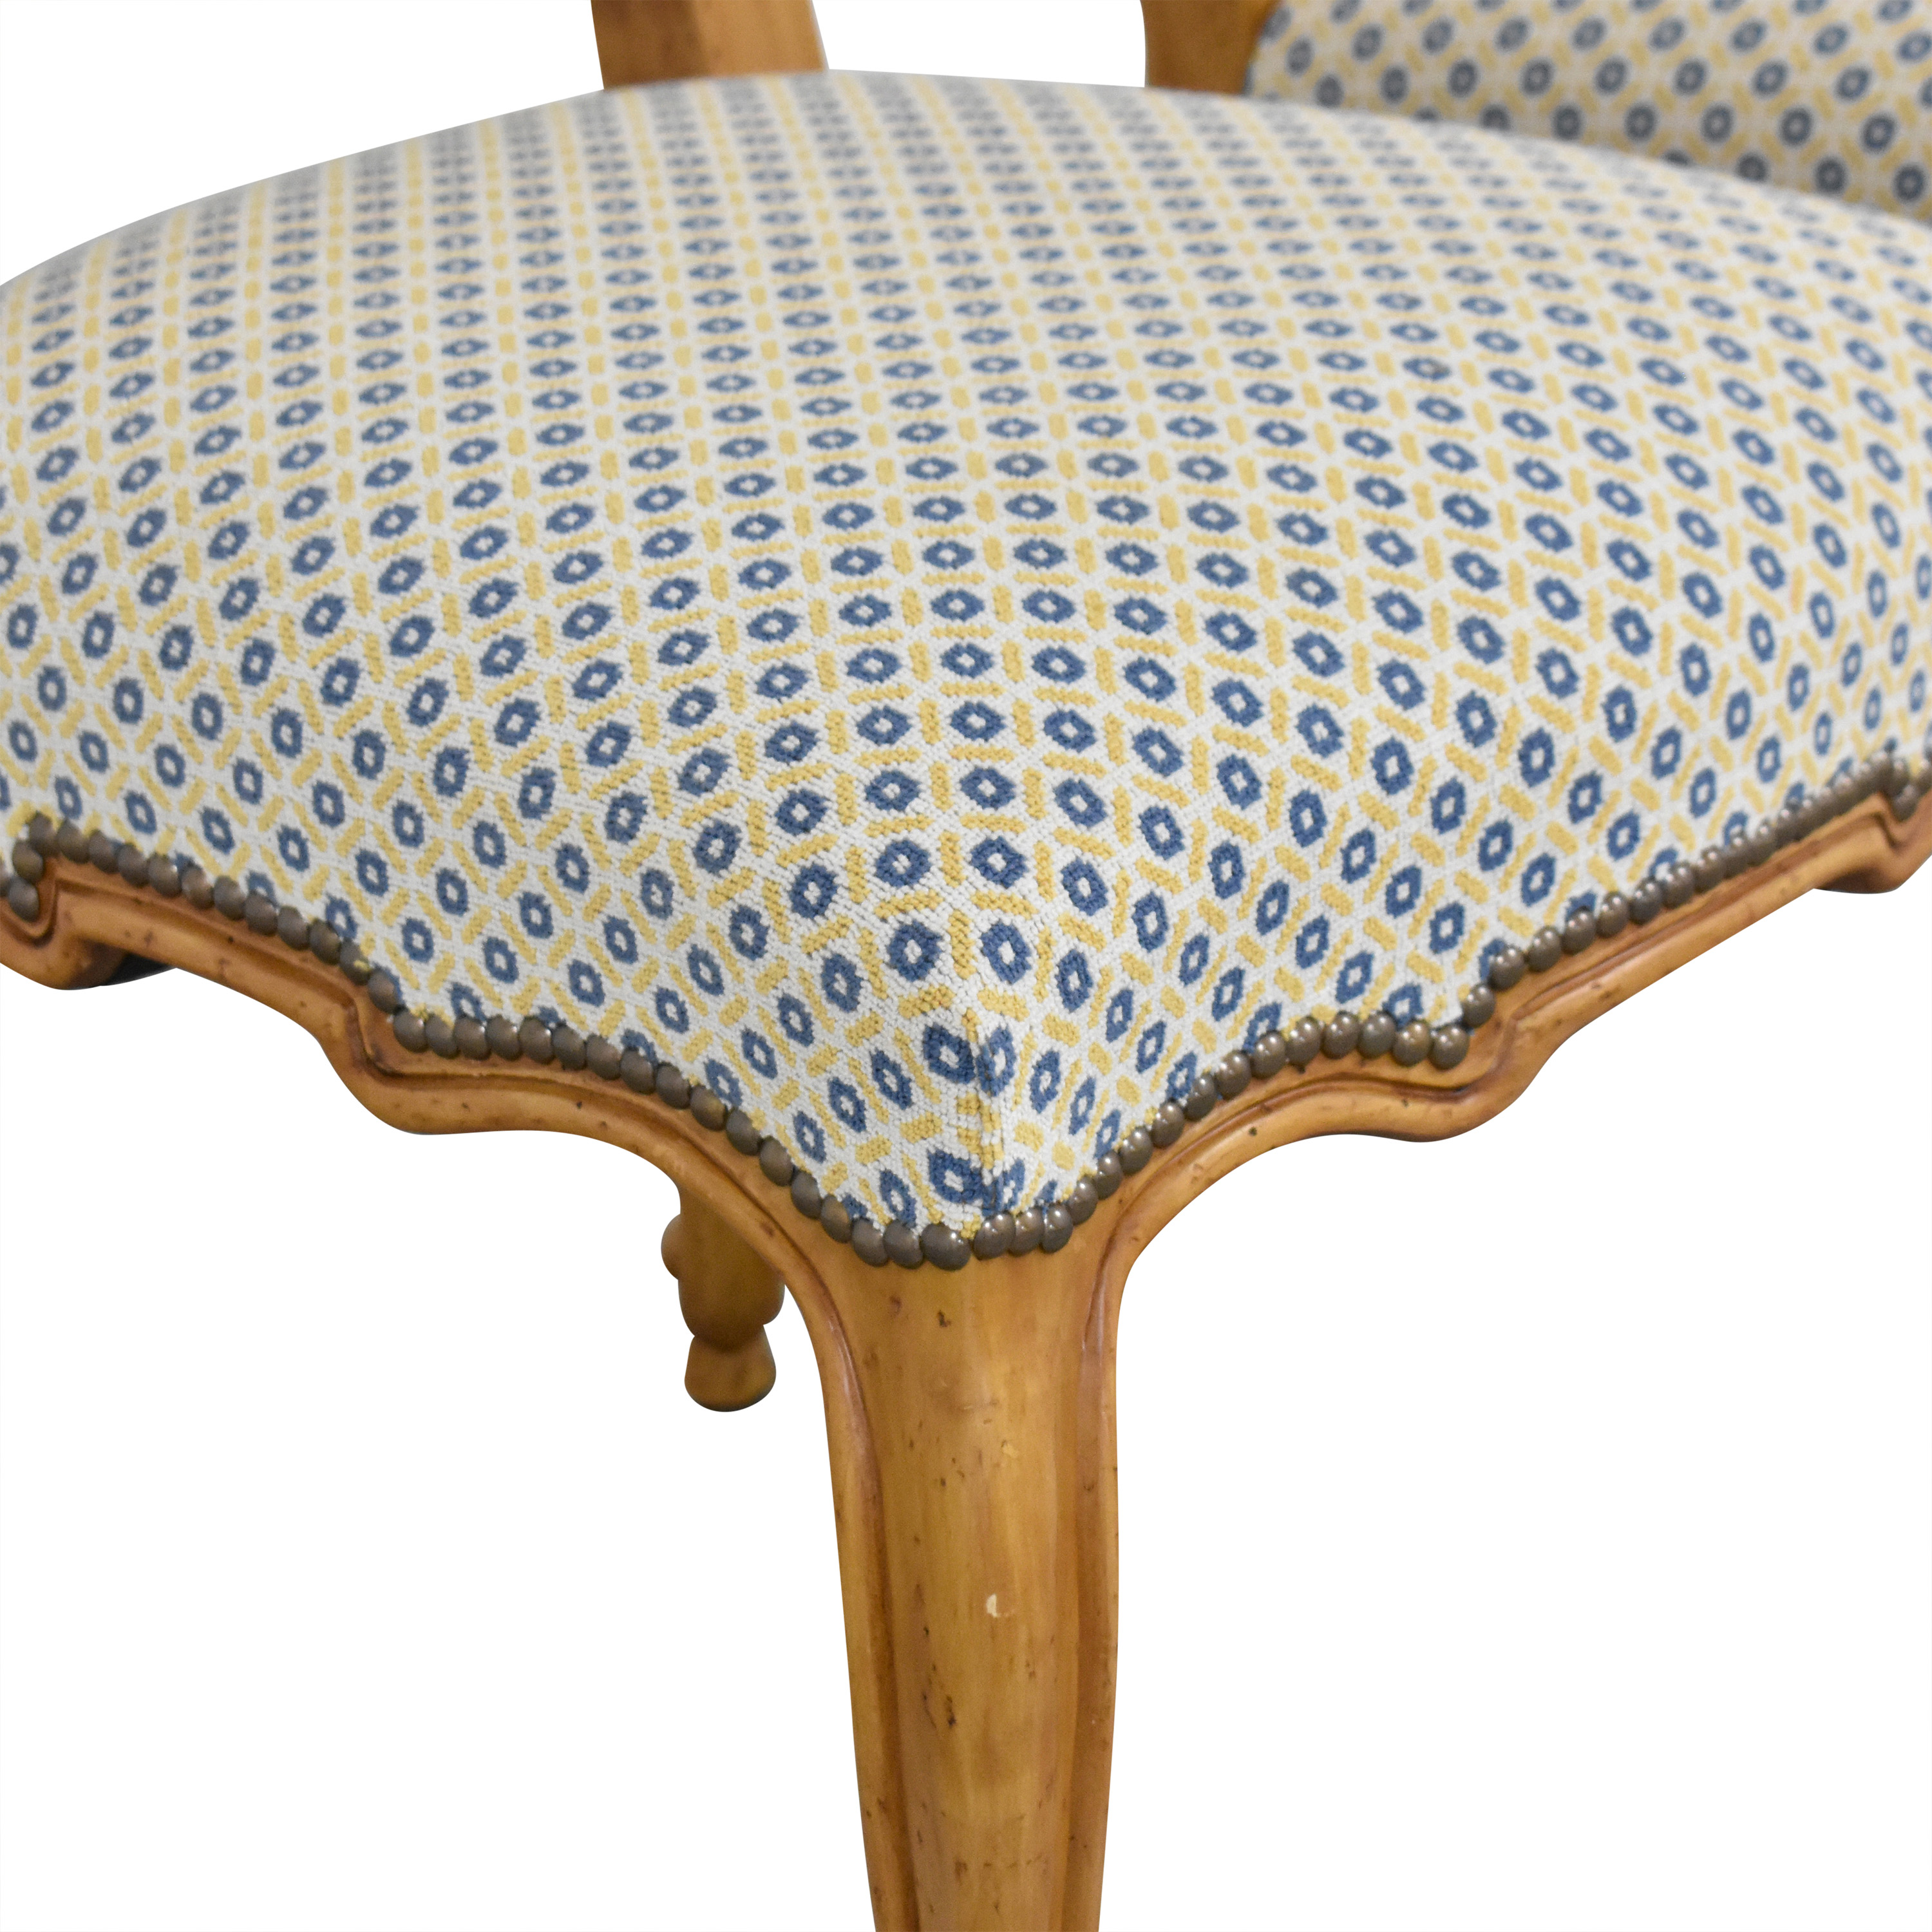 Minton-Spidell Minton-Spidell Regence Dining Side Chairs